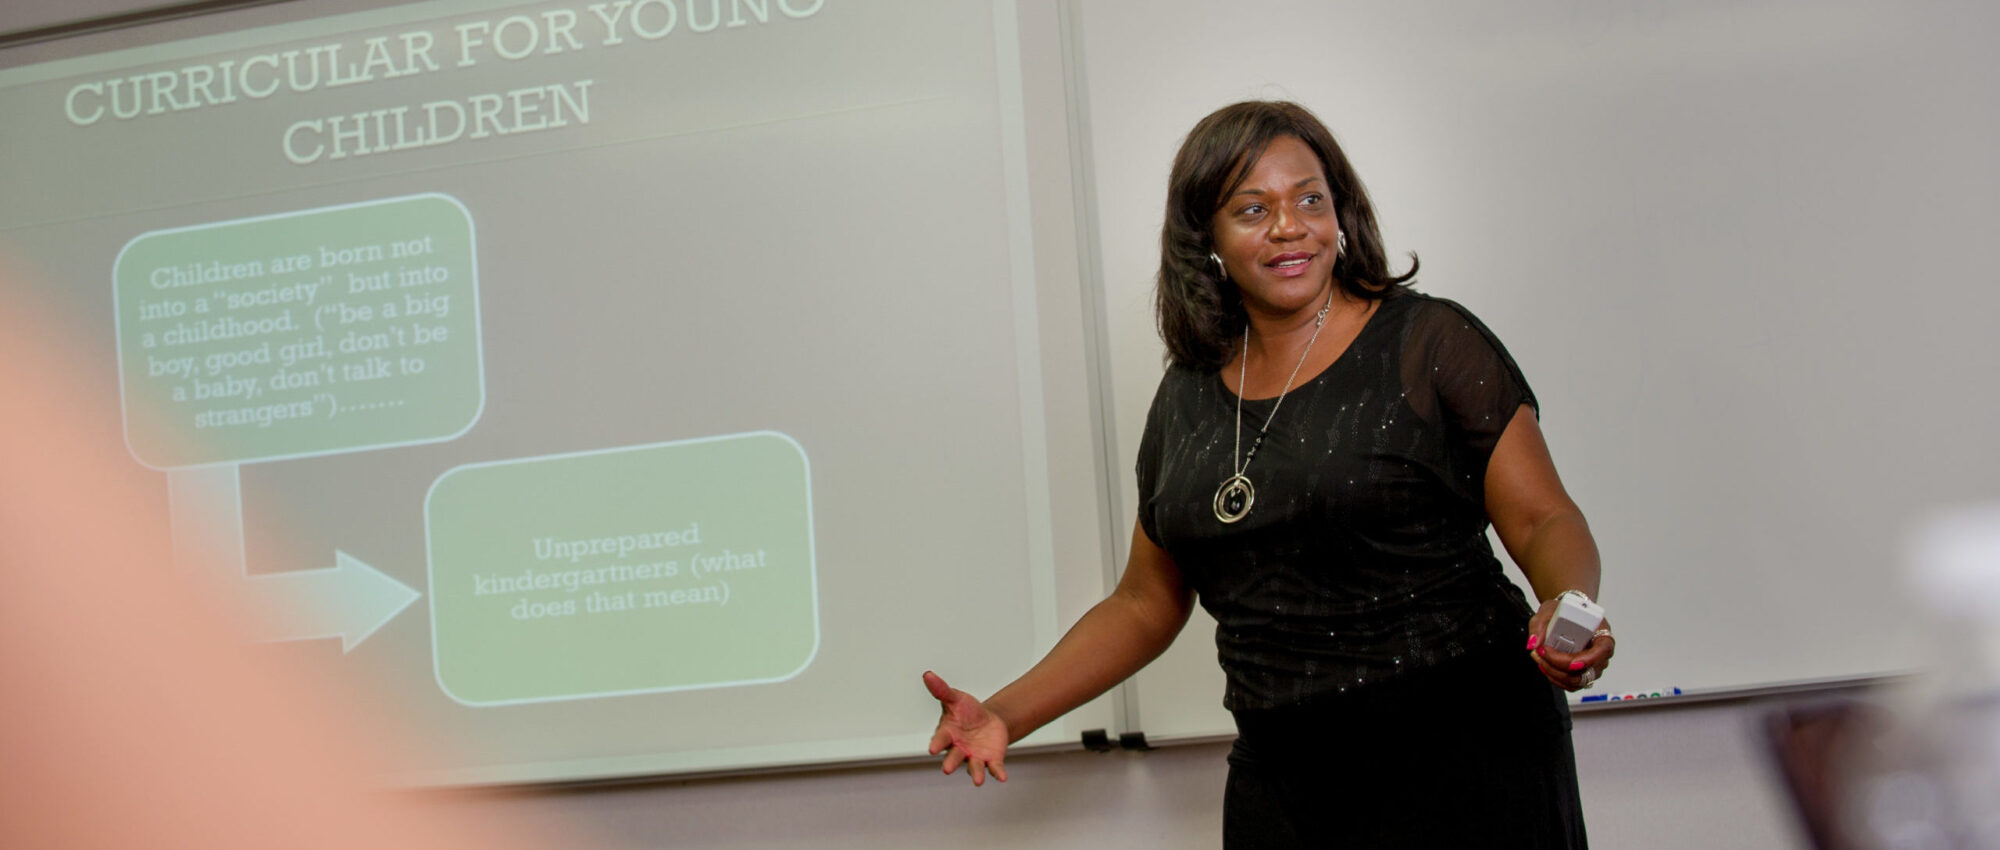 Woman giving presentation to a class.